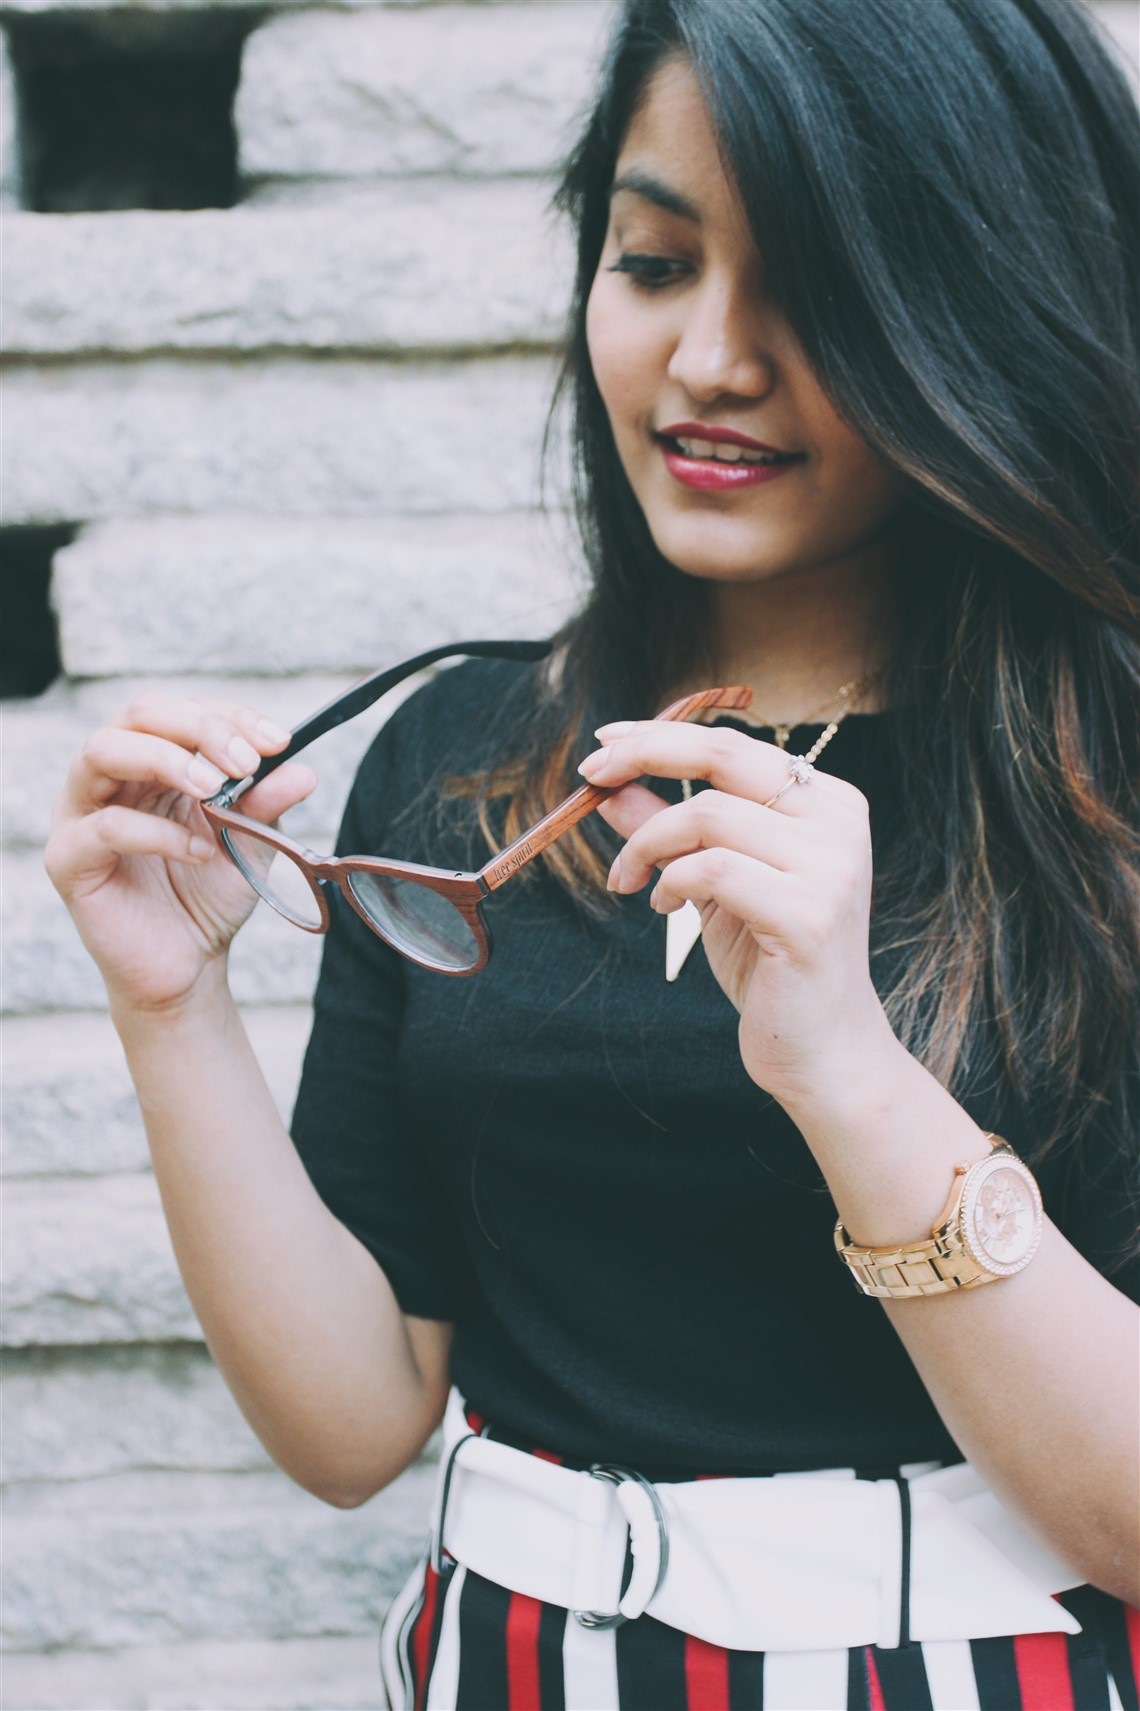 bangalore fashion blogger indian blogger princy mascarenhas the jeromy diaries x woodgeek